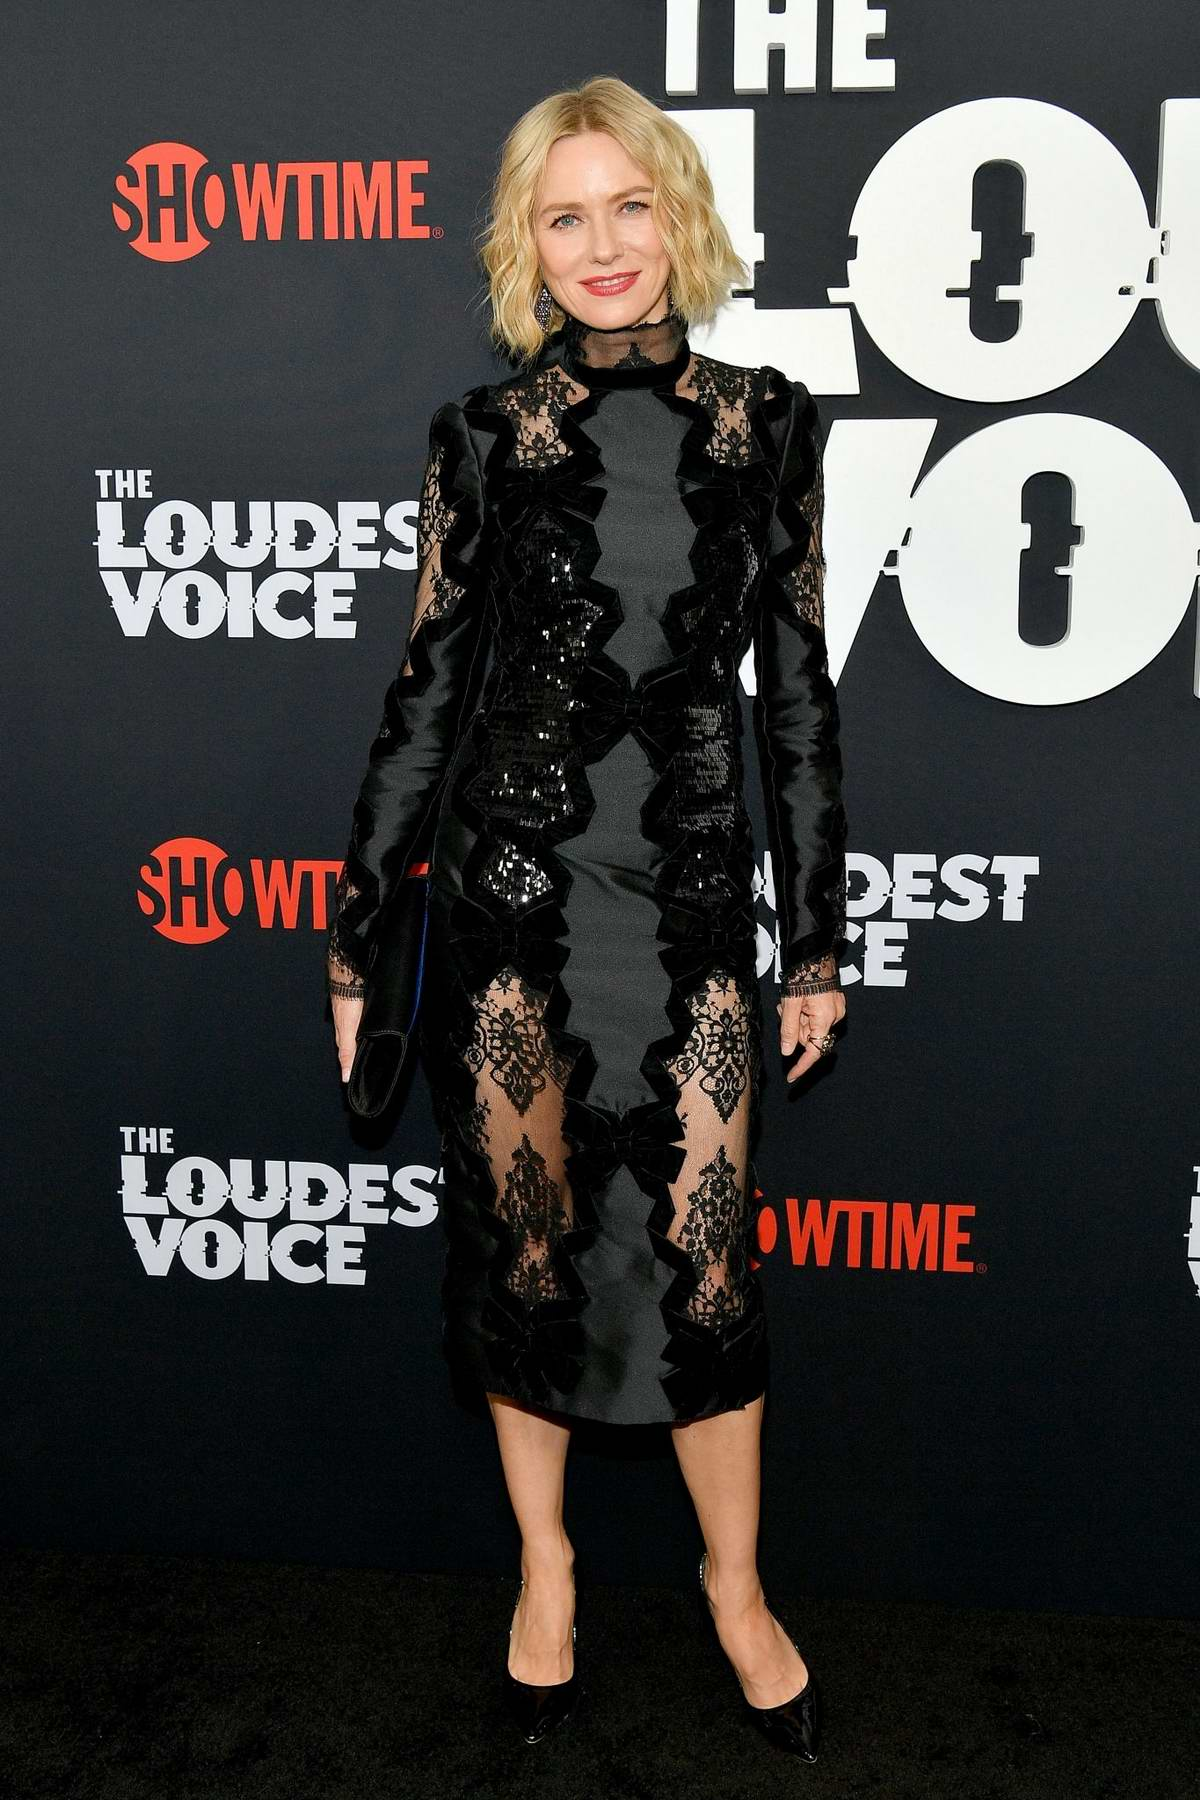 Naomi Watts attends 'The Loudest Voice' New York Premiere at Paris Theatre in New York City